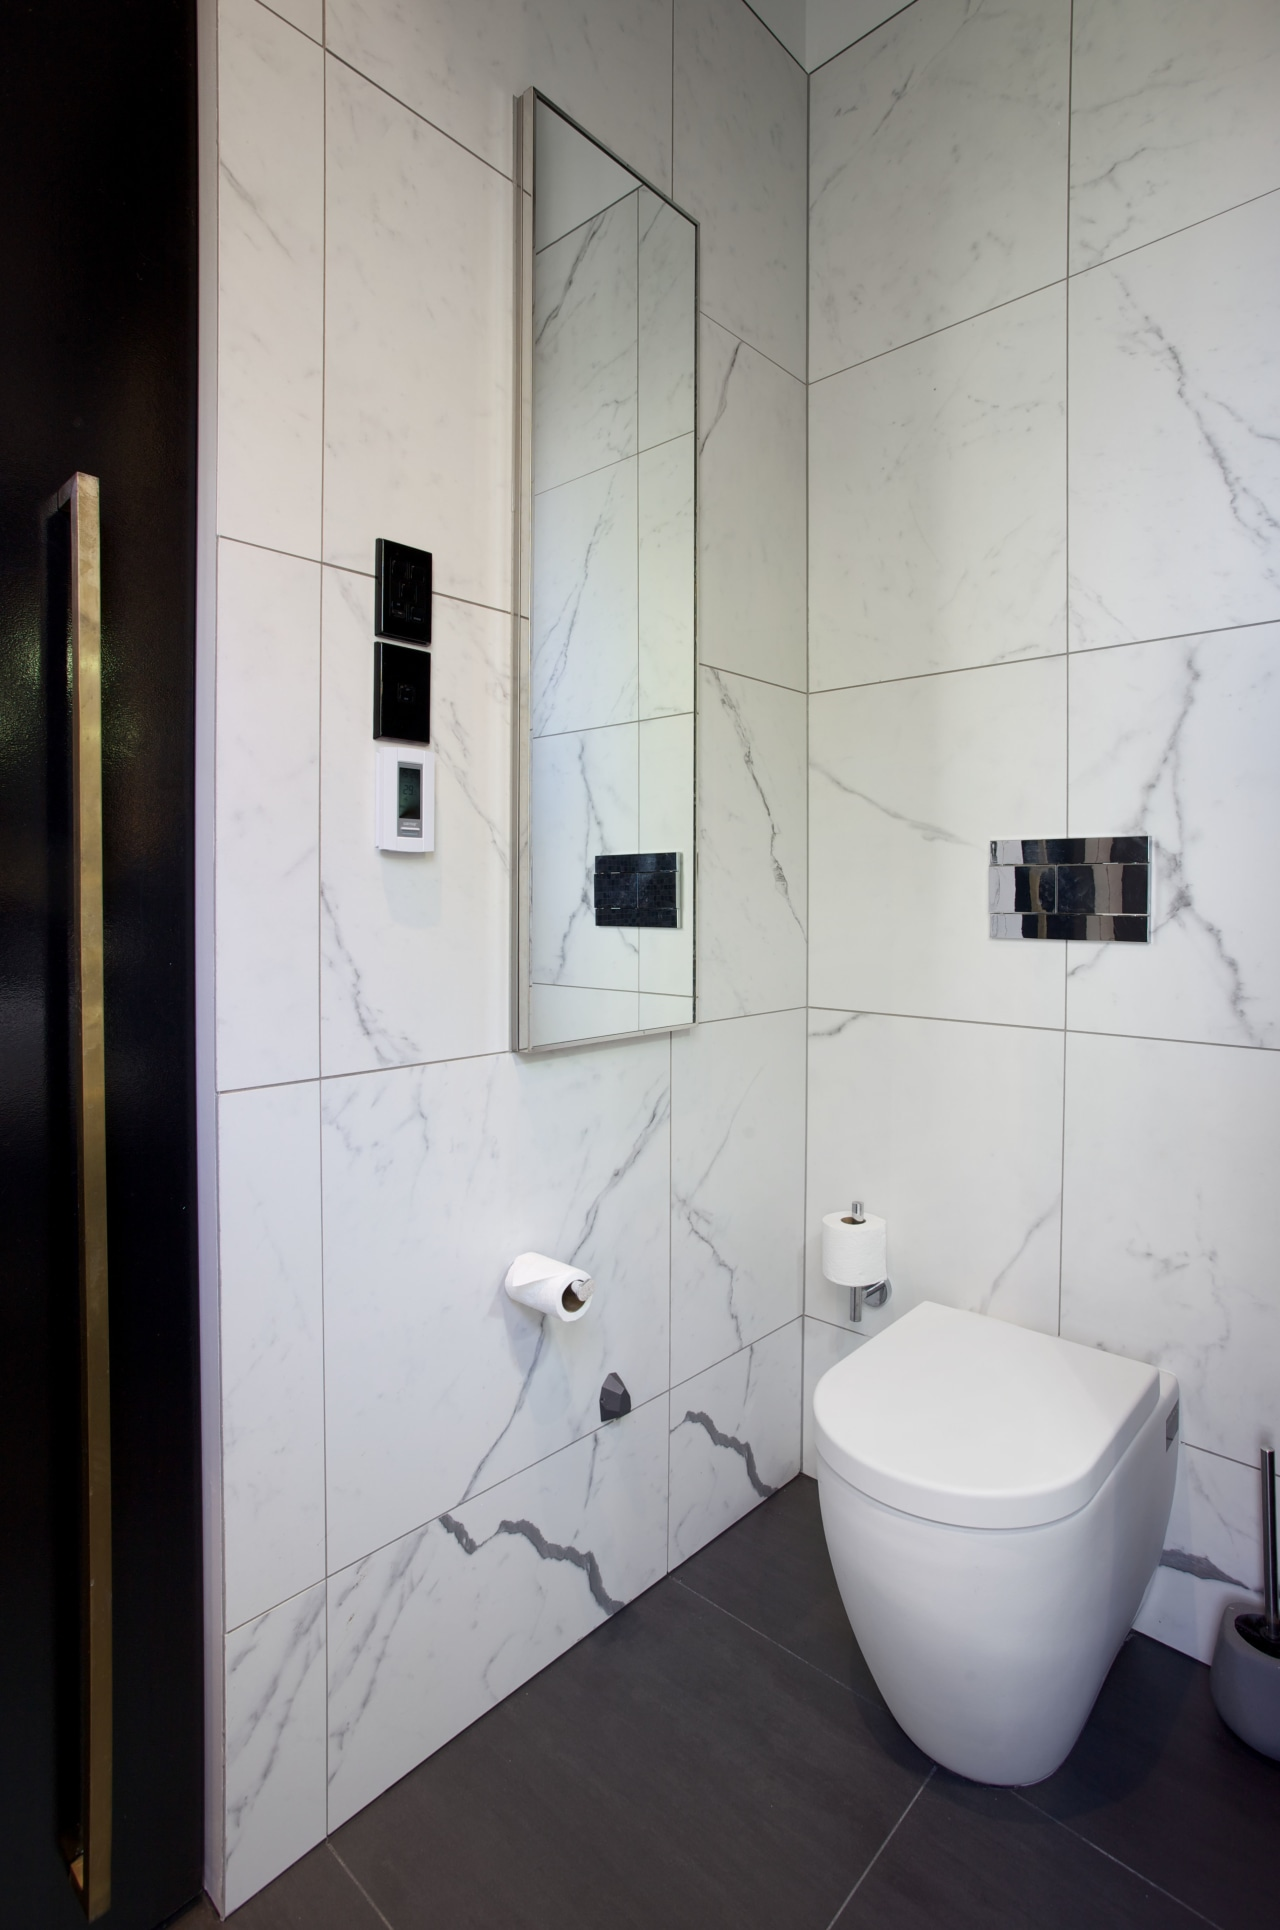 Black, white and touches of brass all come bathroom, floor, interior design, plumbing fixture, product design, public toilet, room, tile, toilet, wall, gray